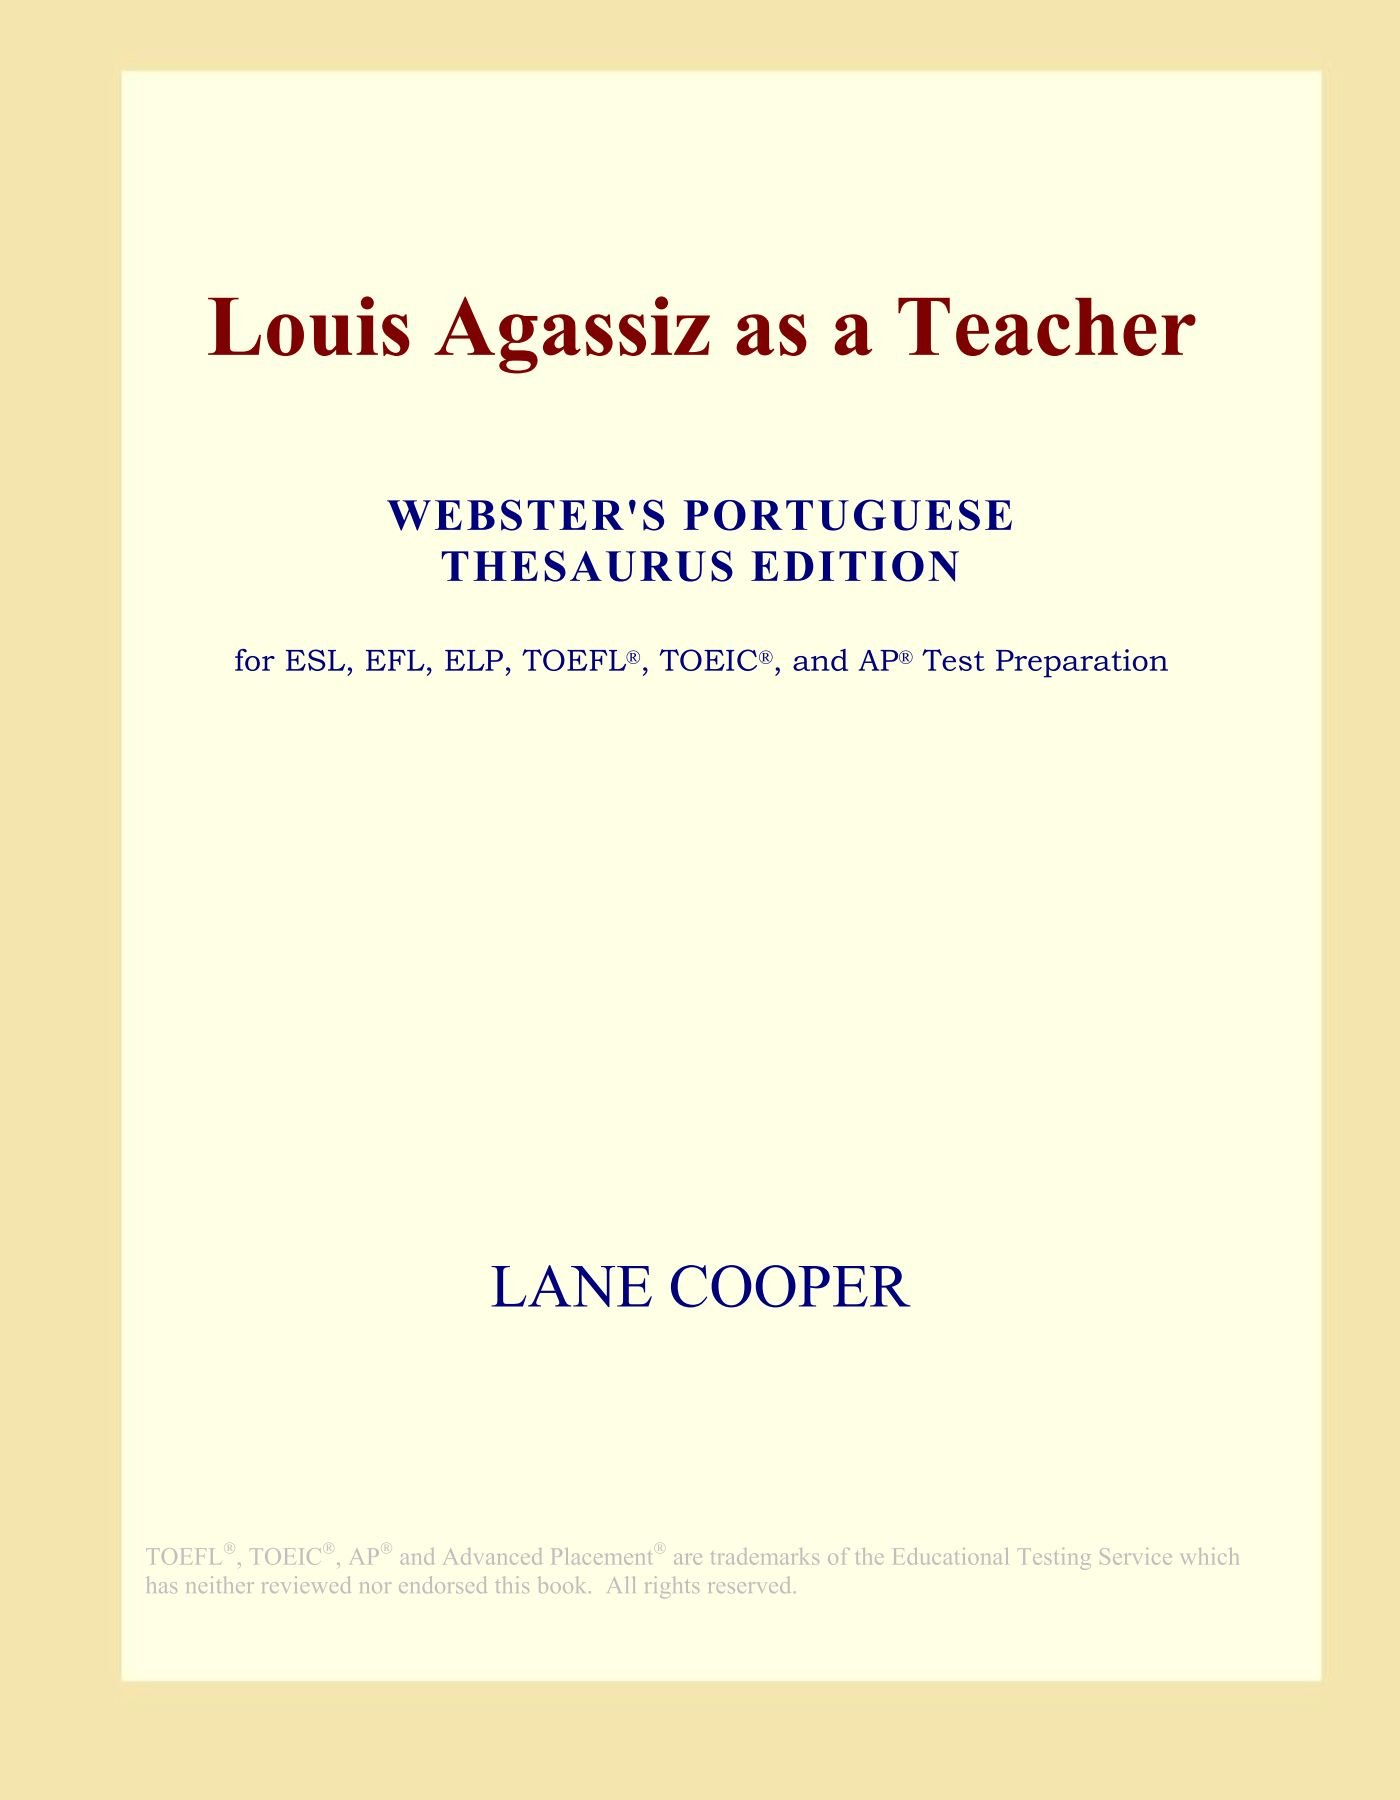 Louis Agassiz as a Teacher (Webster's Portuguese Thesaurus Edition) pdf